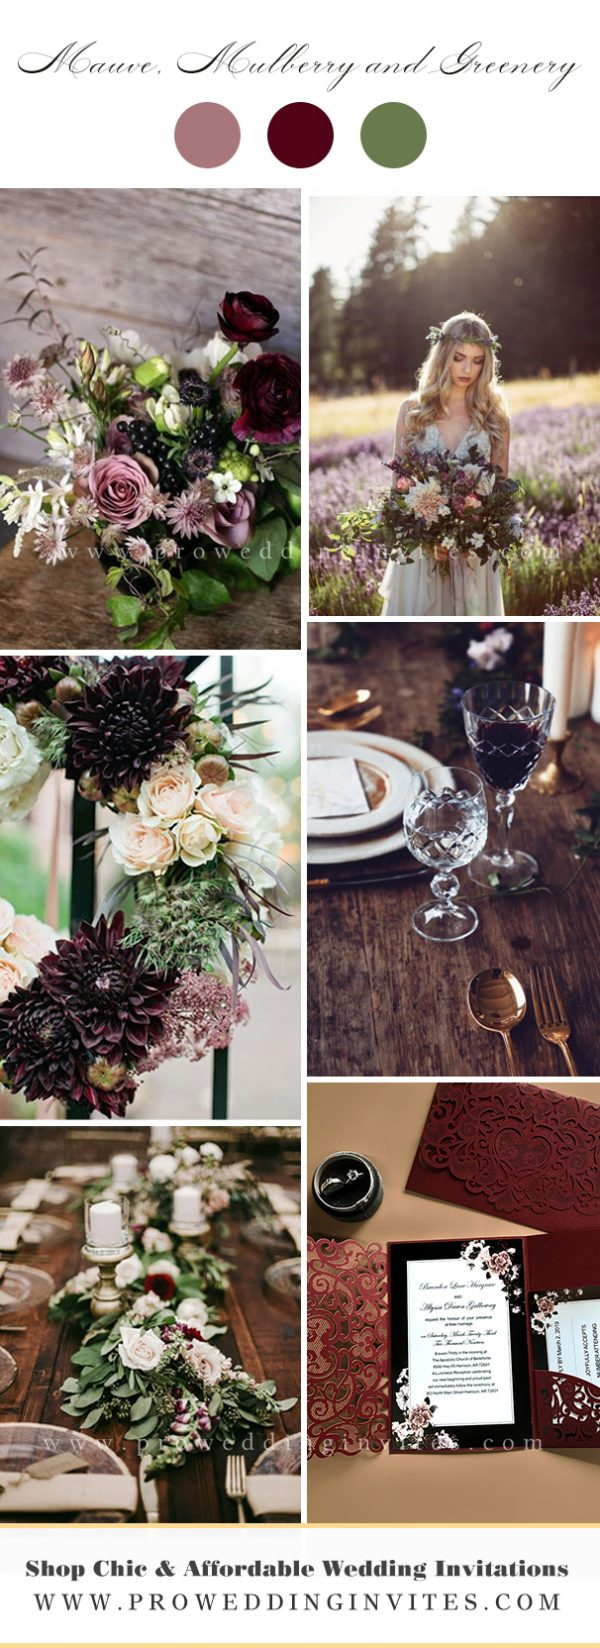 Mauve, Mulberry and Greenery Wedding Wedding Color Ideas with Matching Invitations